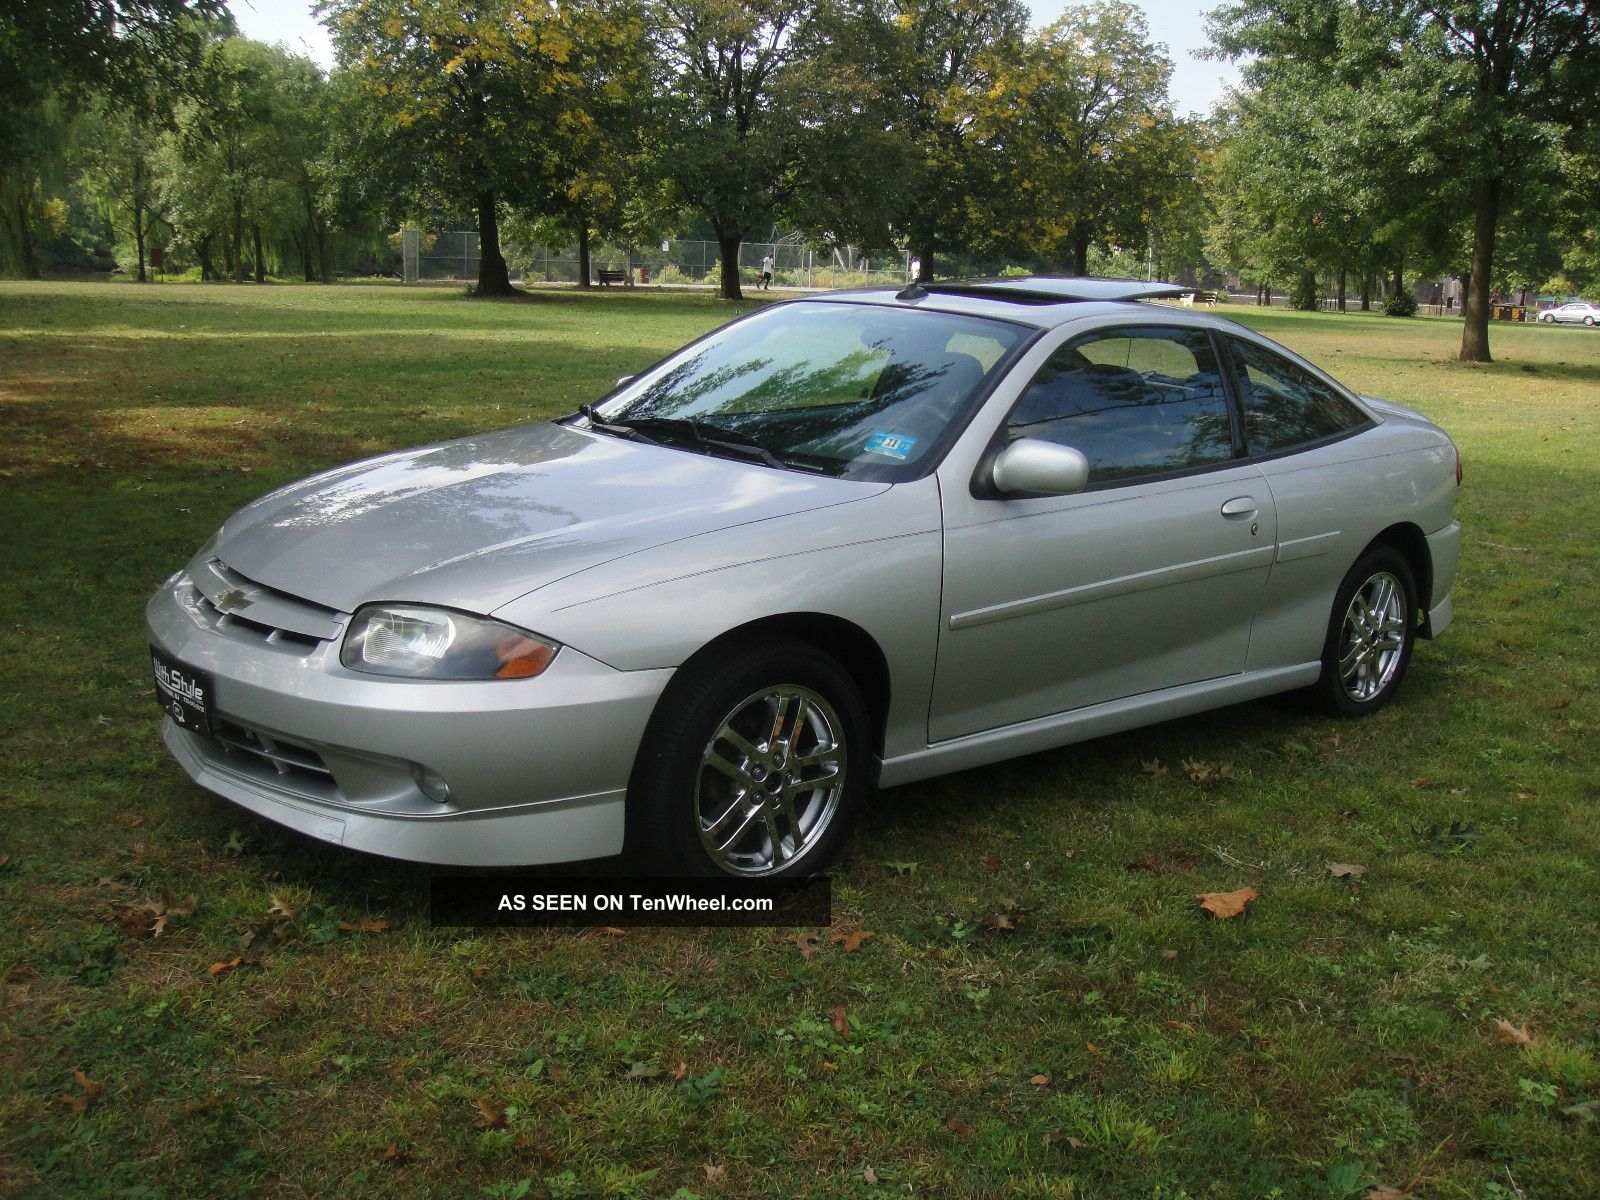 2005 chevrolet cavalier ls sport coupe fully loaded cavalier photo 1. Cars Review. Best American Auto & Cars Review